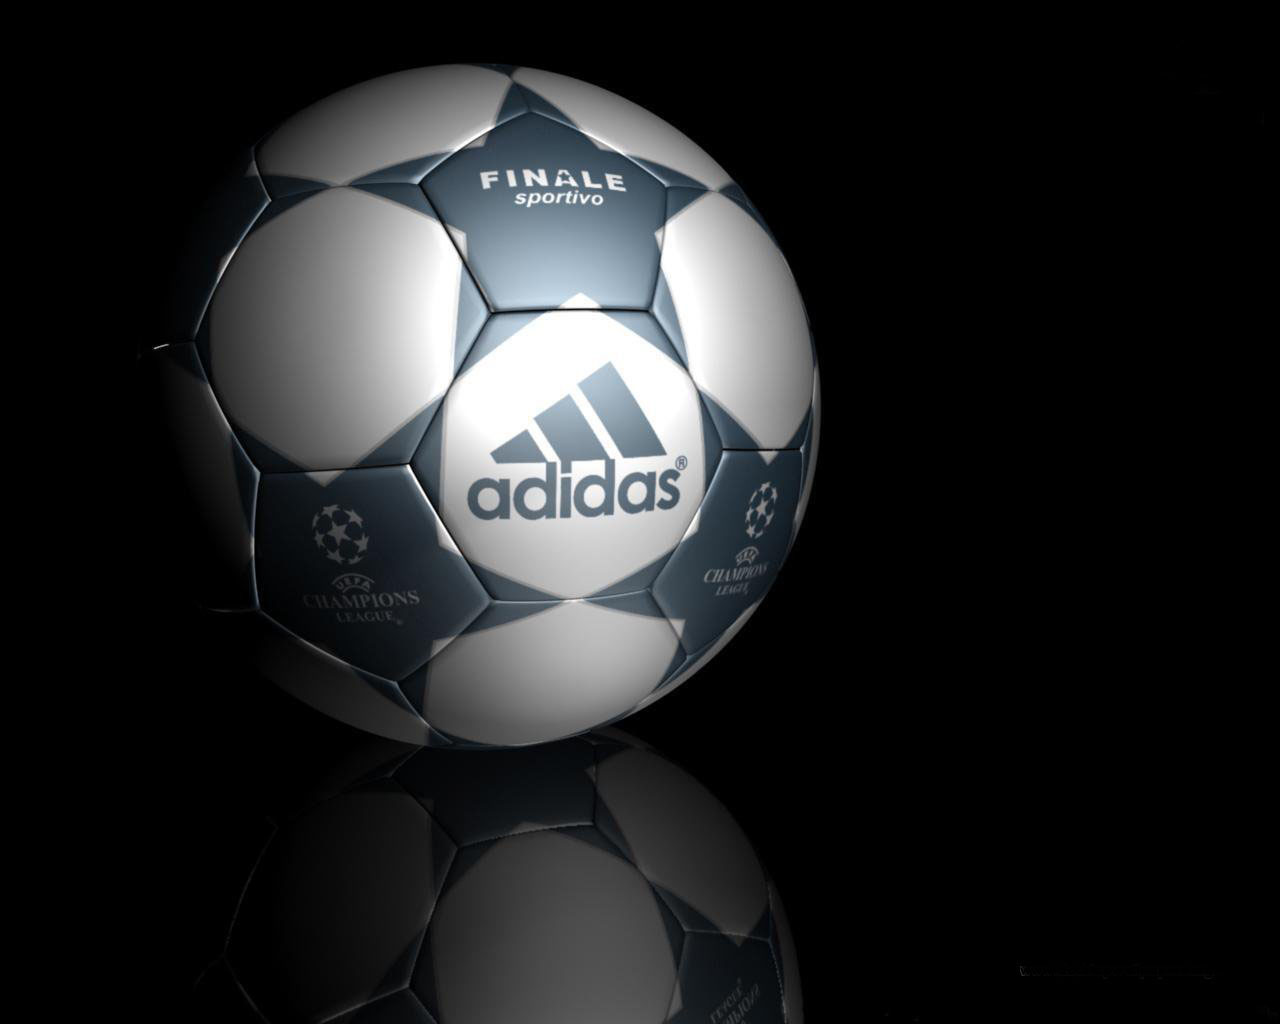 Adidas soccer ball wallpaper